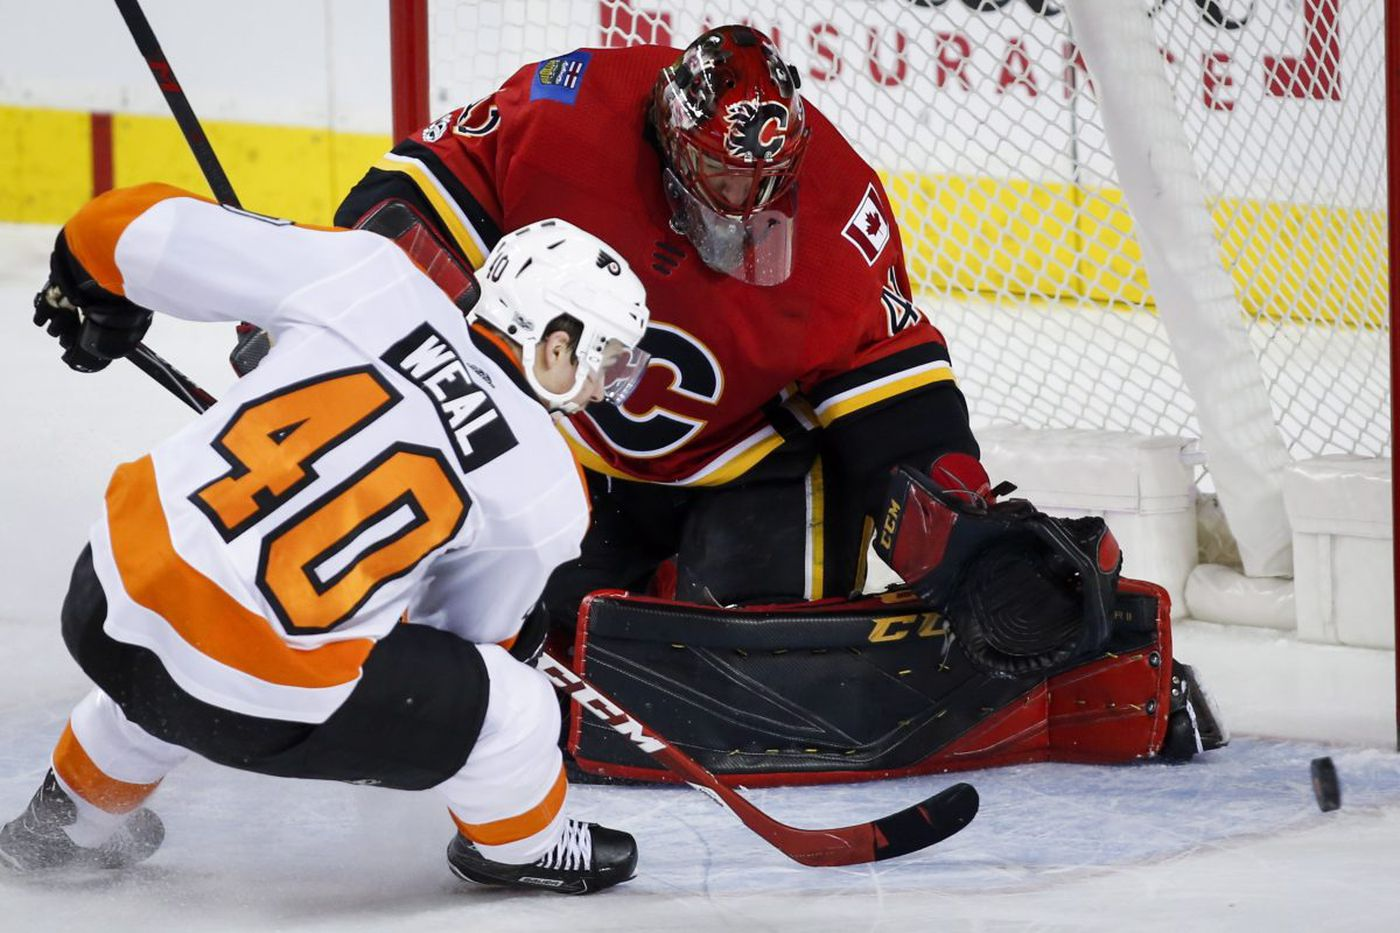 Flyers end 10-game losing streak as Brian Elliott makes 43 saves